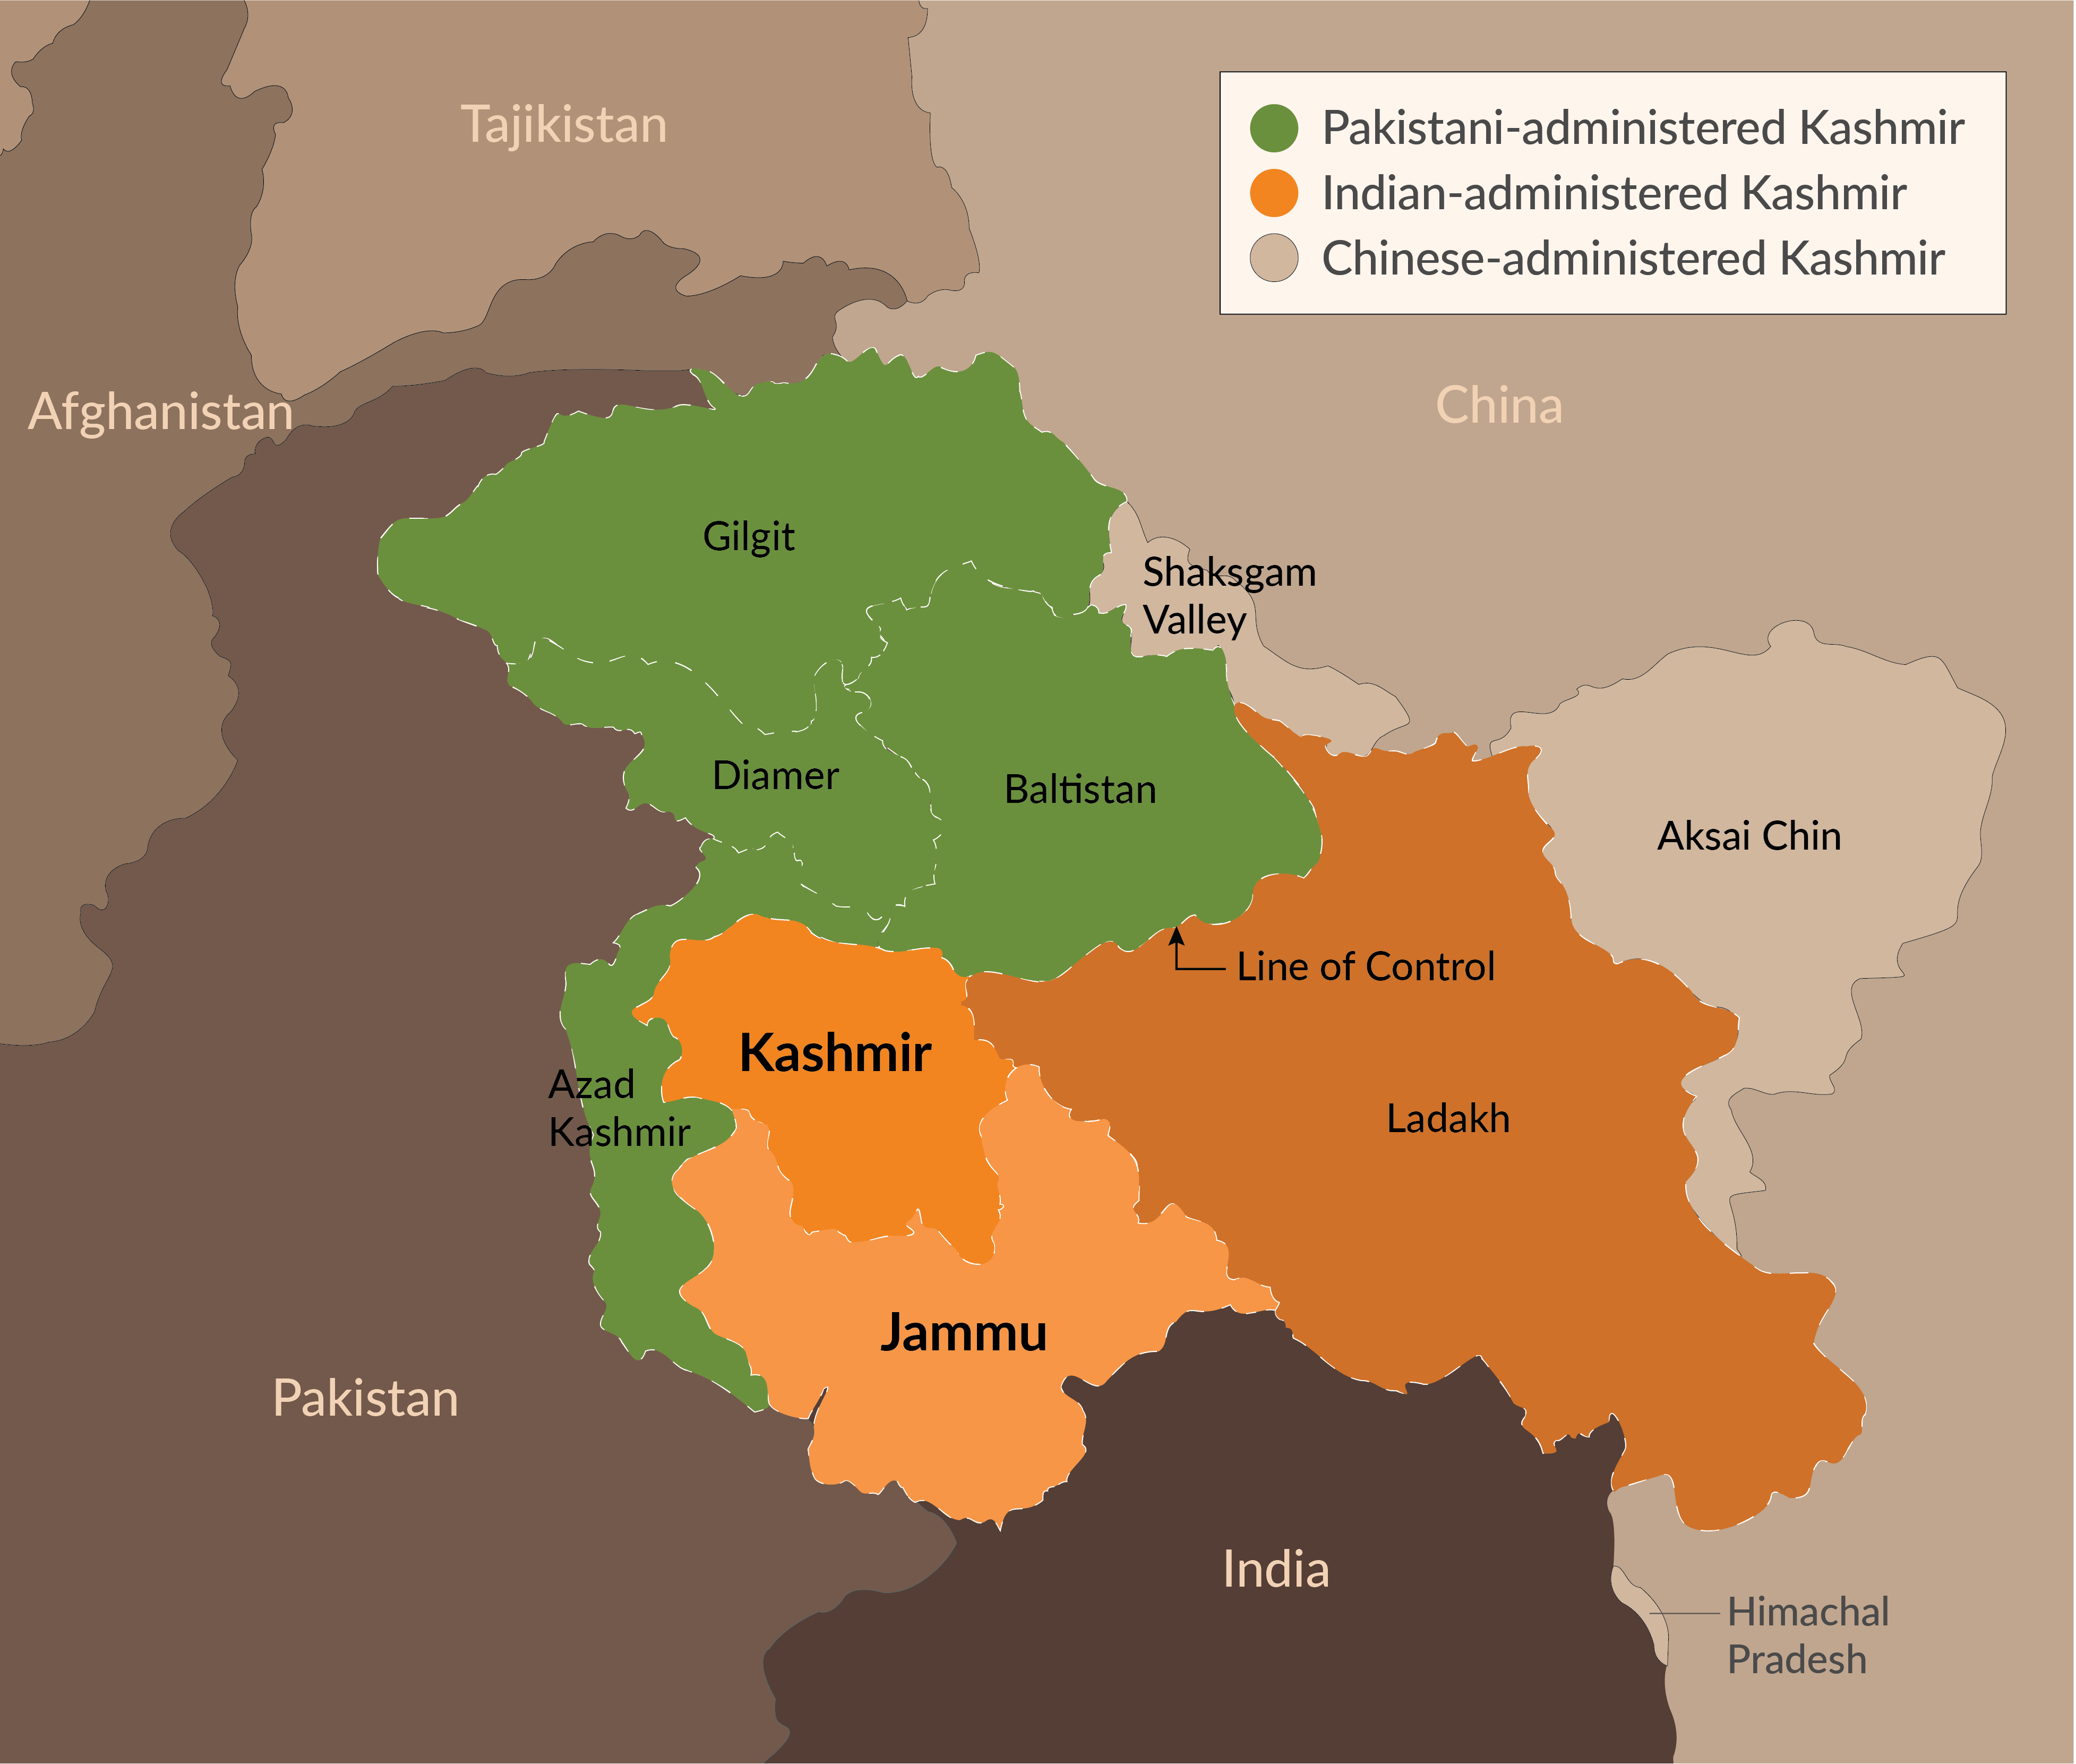 After the 1947 partition of British India, Jammu and Kashmir were one of many states given the choice to be part of either India or Pakistan.